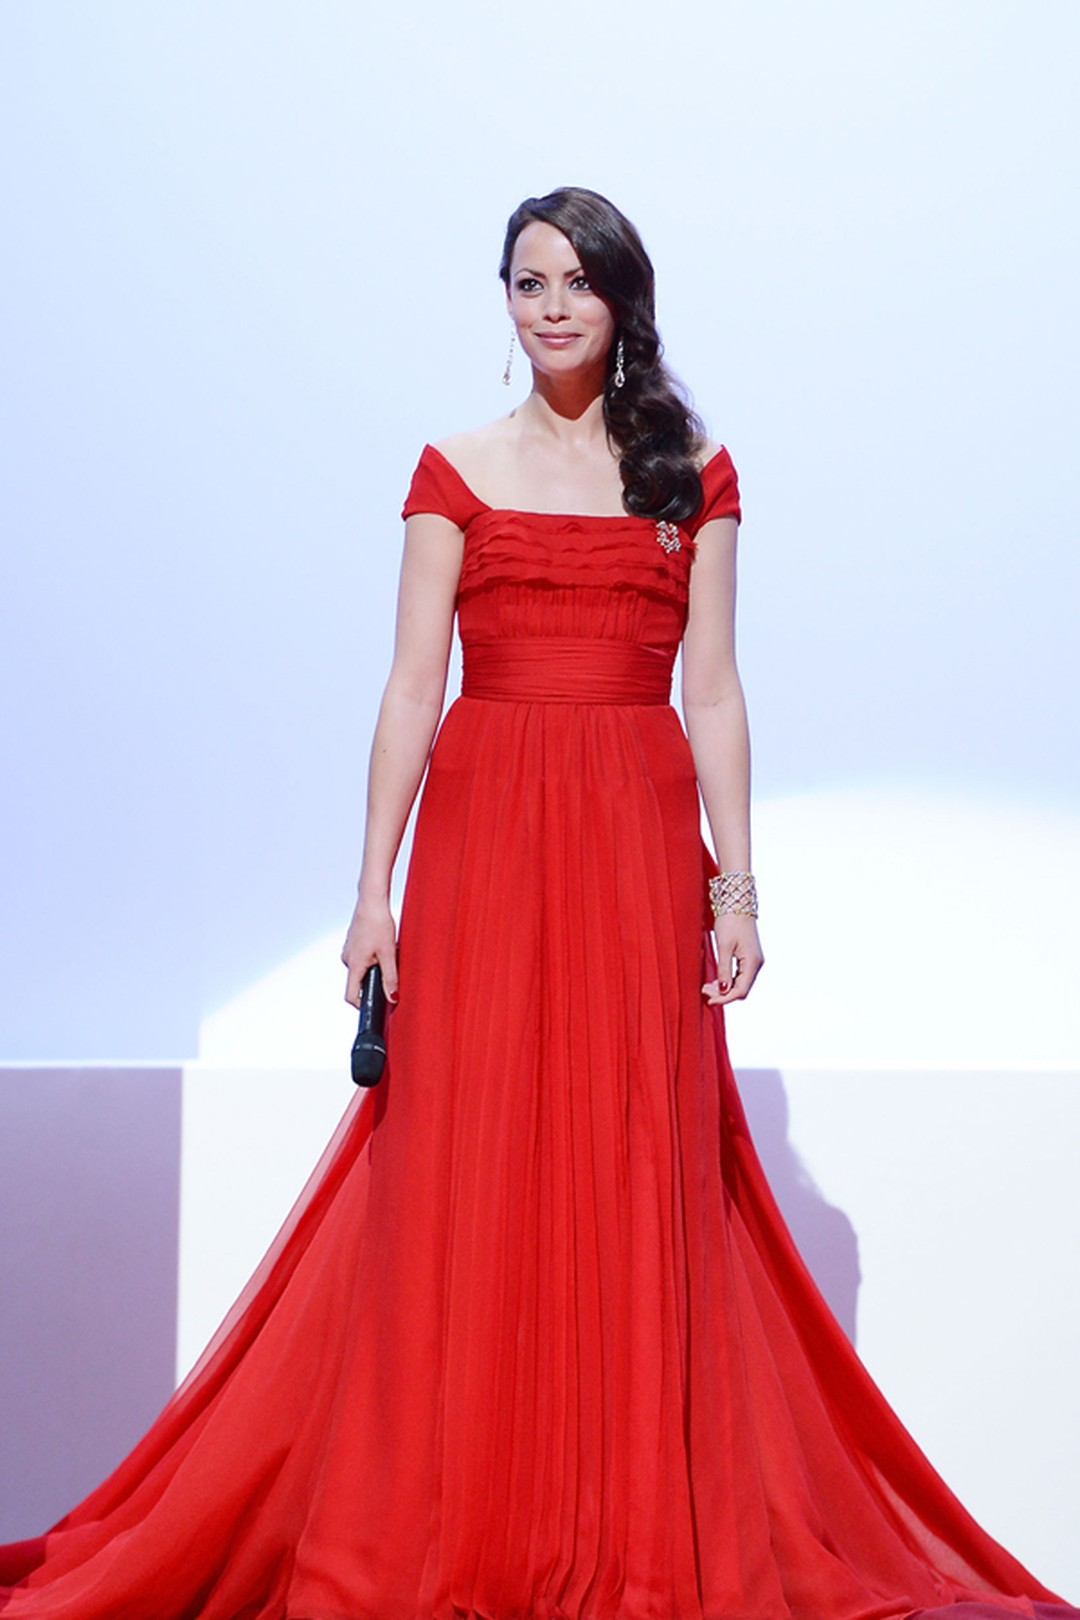 Berenice Bejo Louis Vuitton dress and Chopard Jewellery.jpg